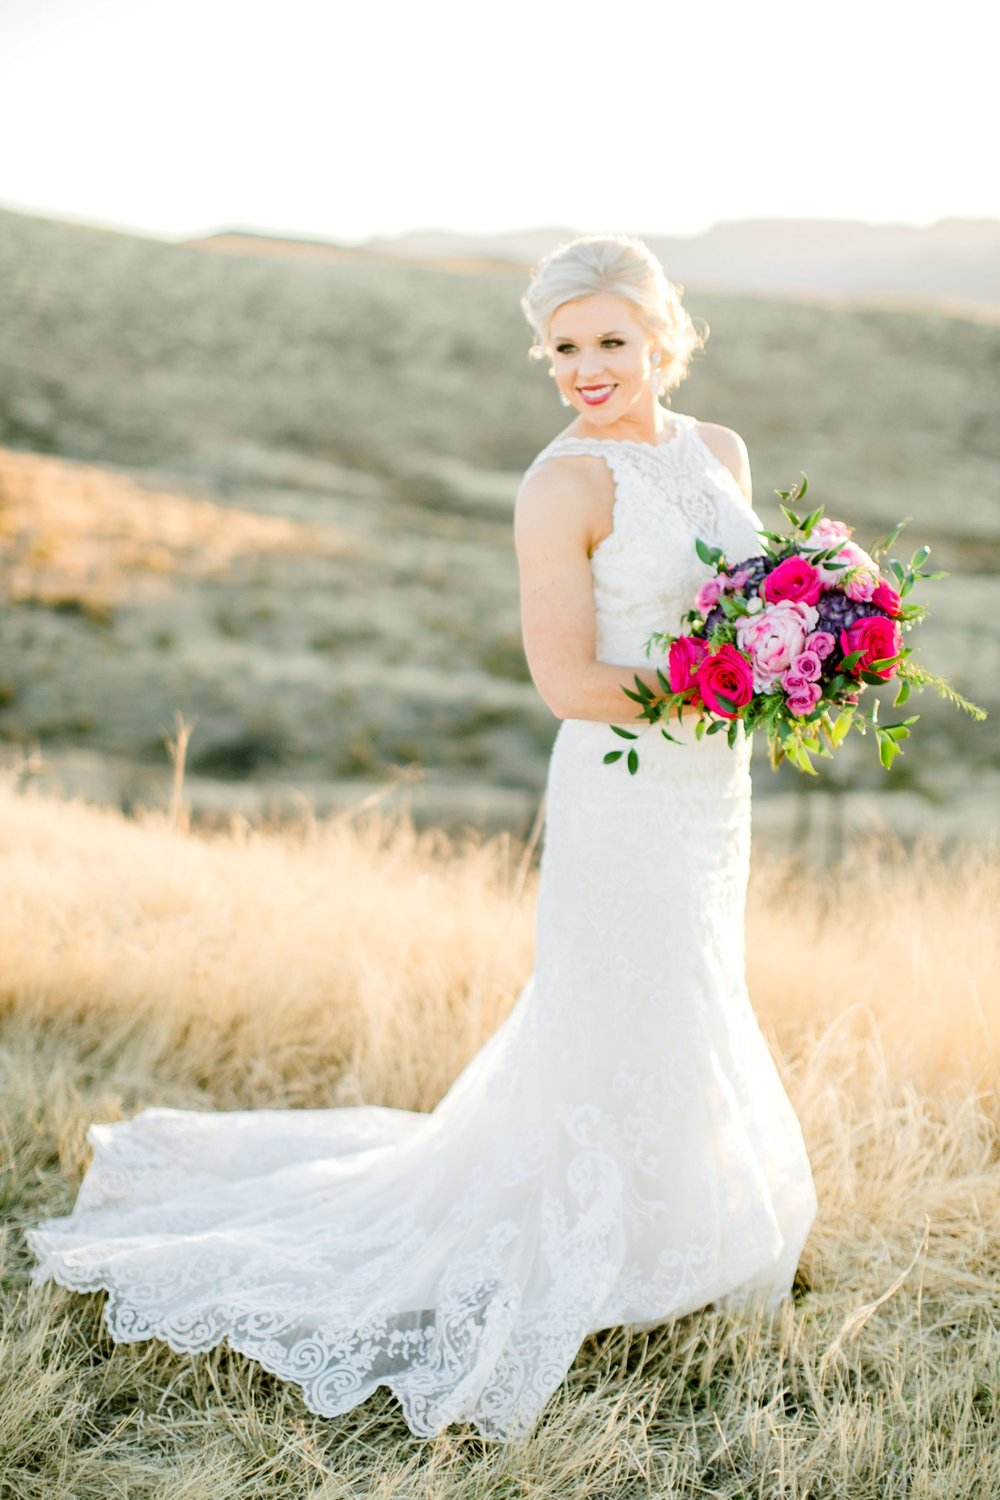 Jenna-evans-bridals-balmorhea-texas-fort-davis-wedding-photographer-lubbock-photographer__0058.jpg